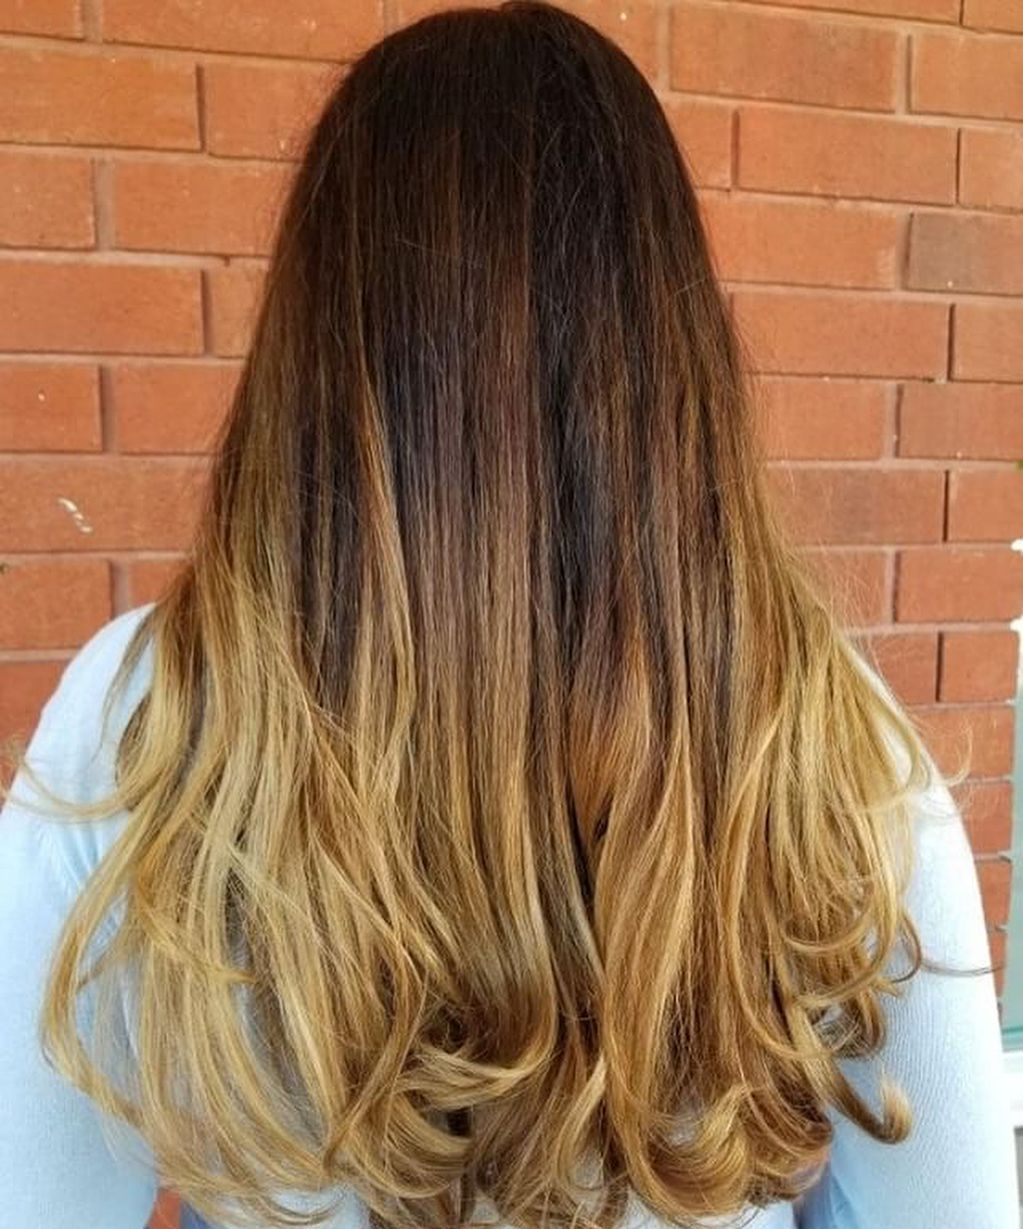 A beautiful rich balyage by Chiara warmhair 🍂🍁 fallhair